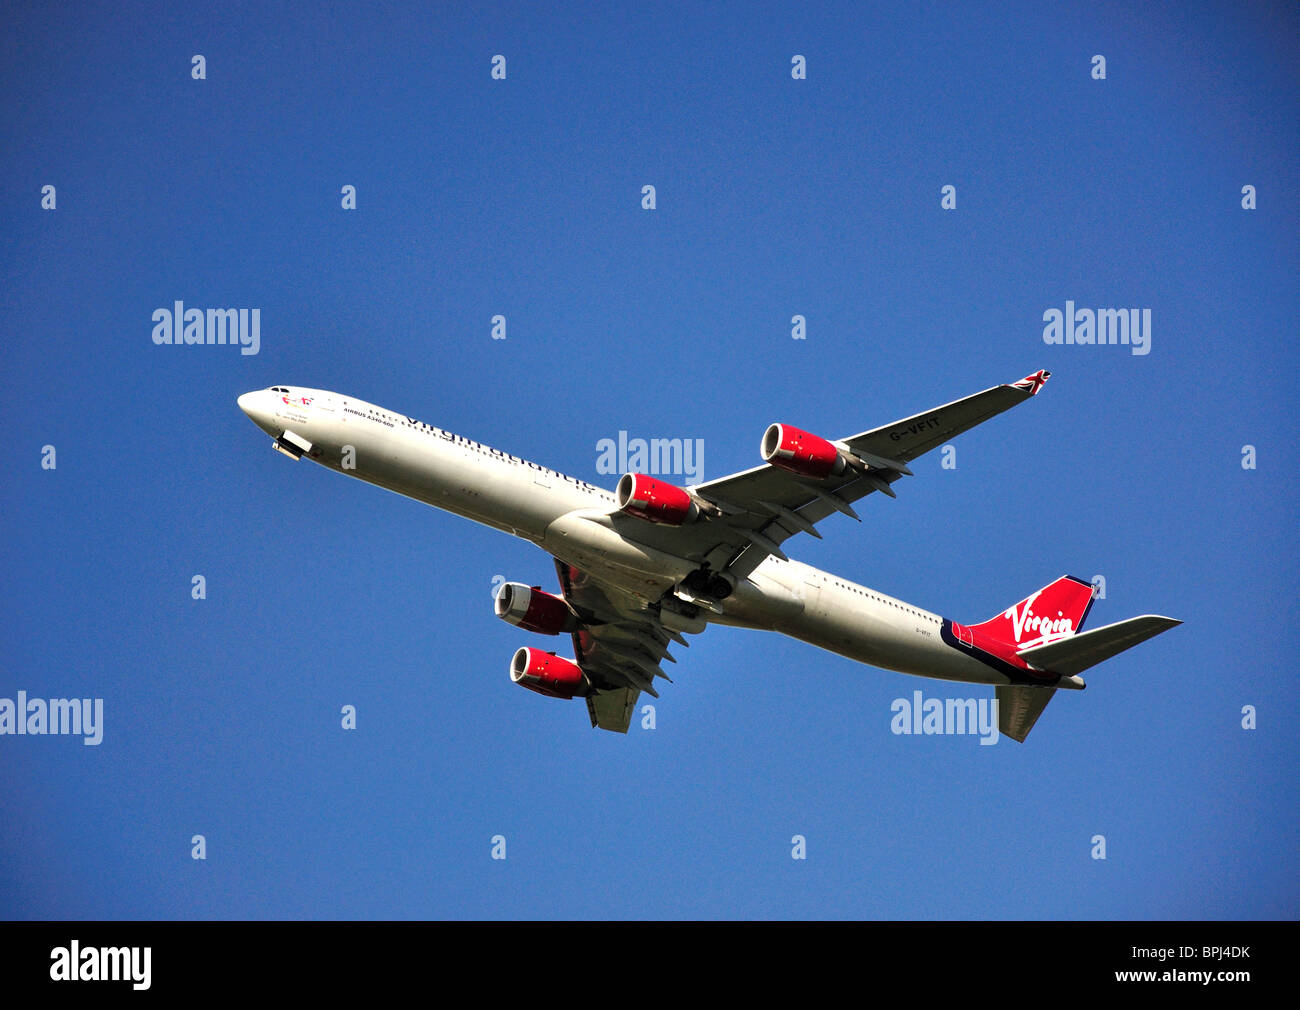 Virgin Atlantic Airbus A340-600 taking off from Heathrow Airport, Greater London, England, United Kingdom - Stock Image